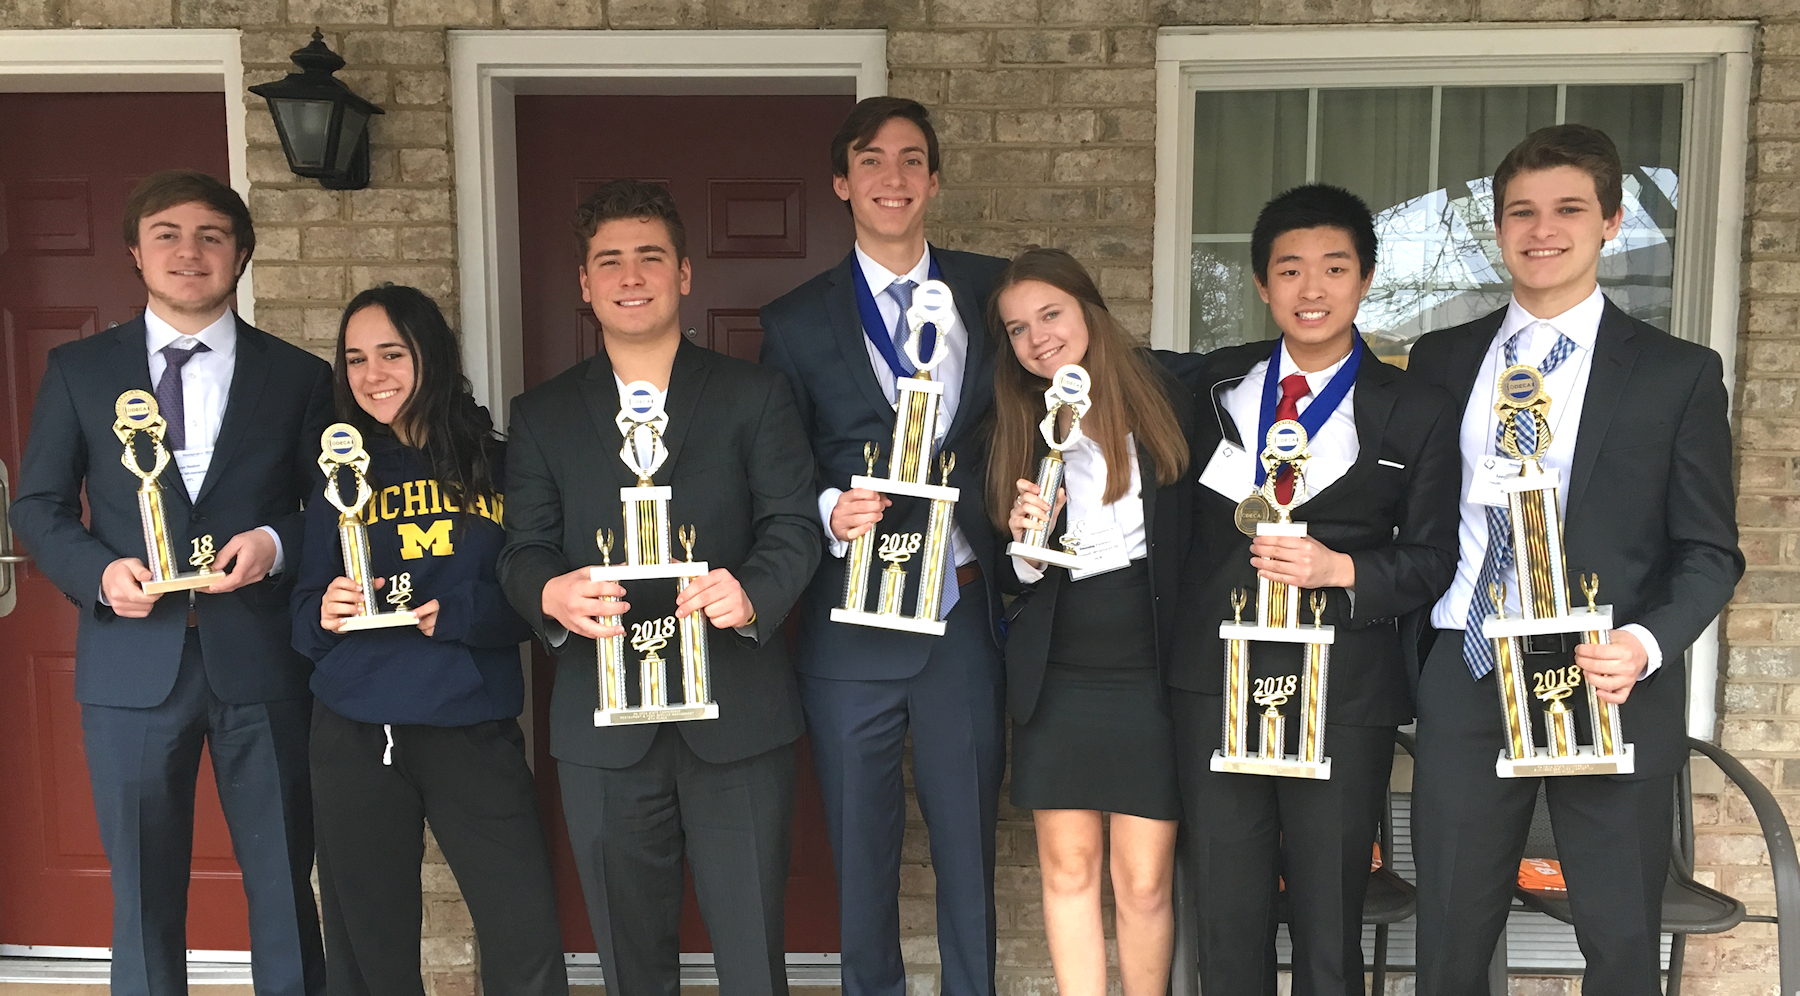 Students holding trophies from DECA state conference.